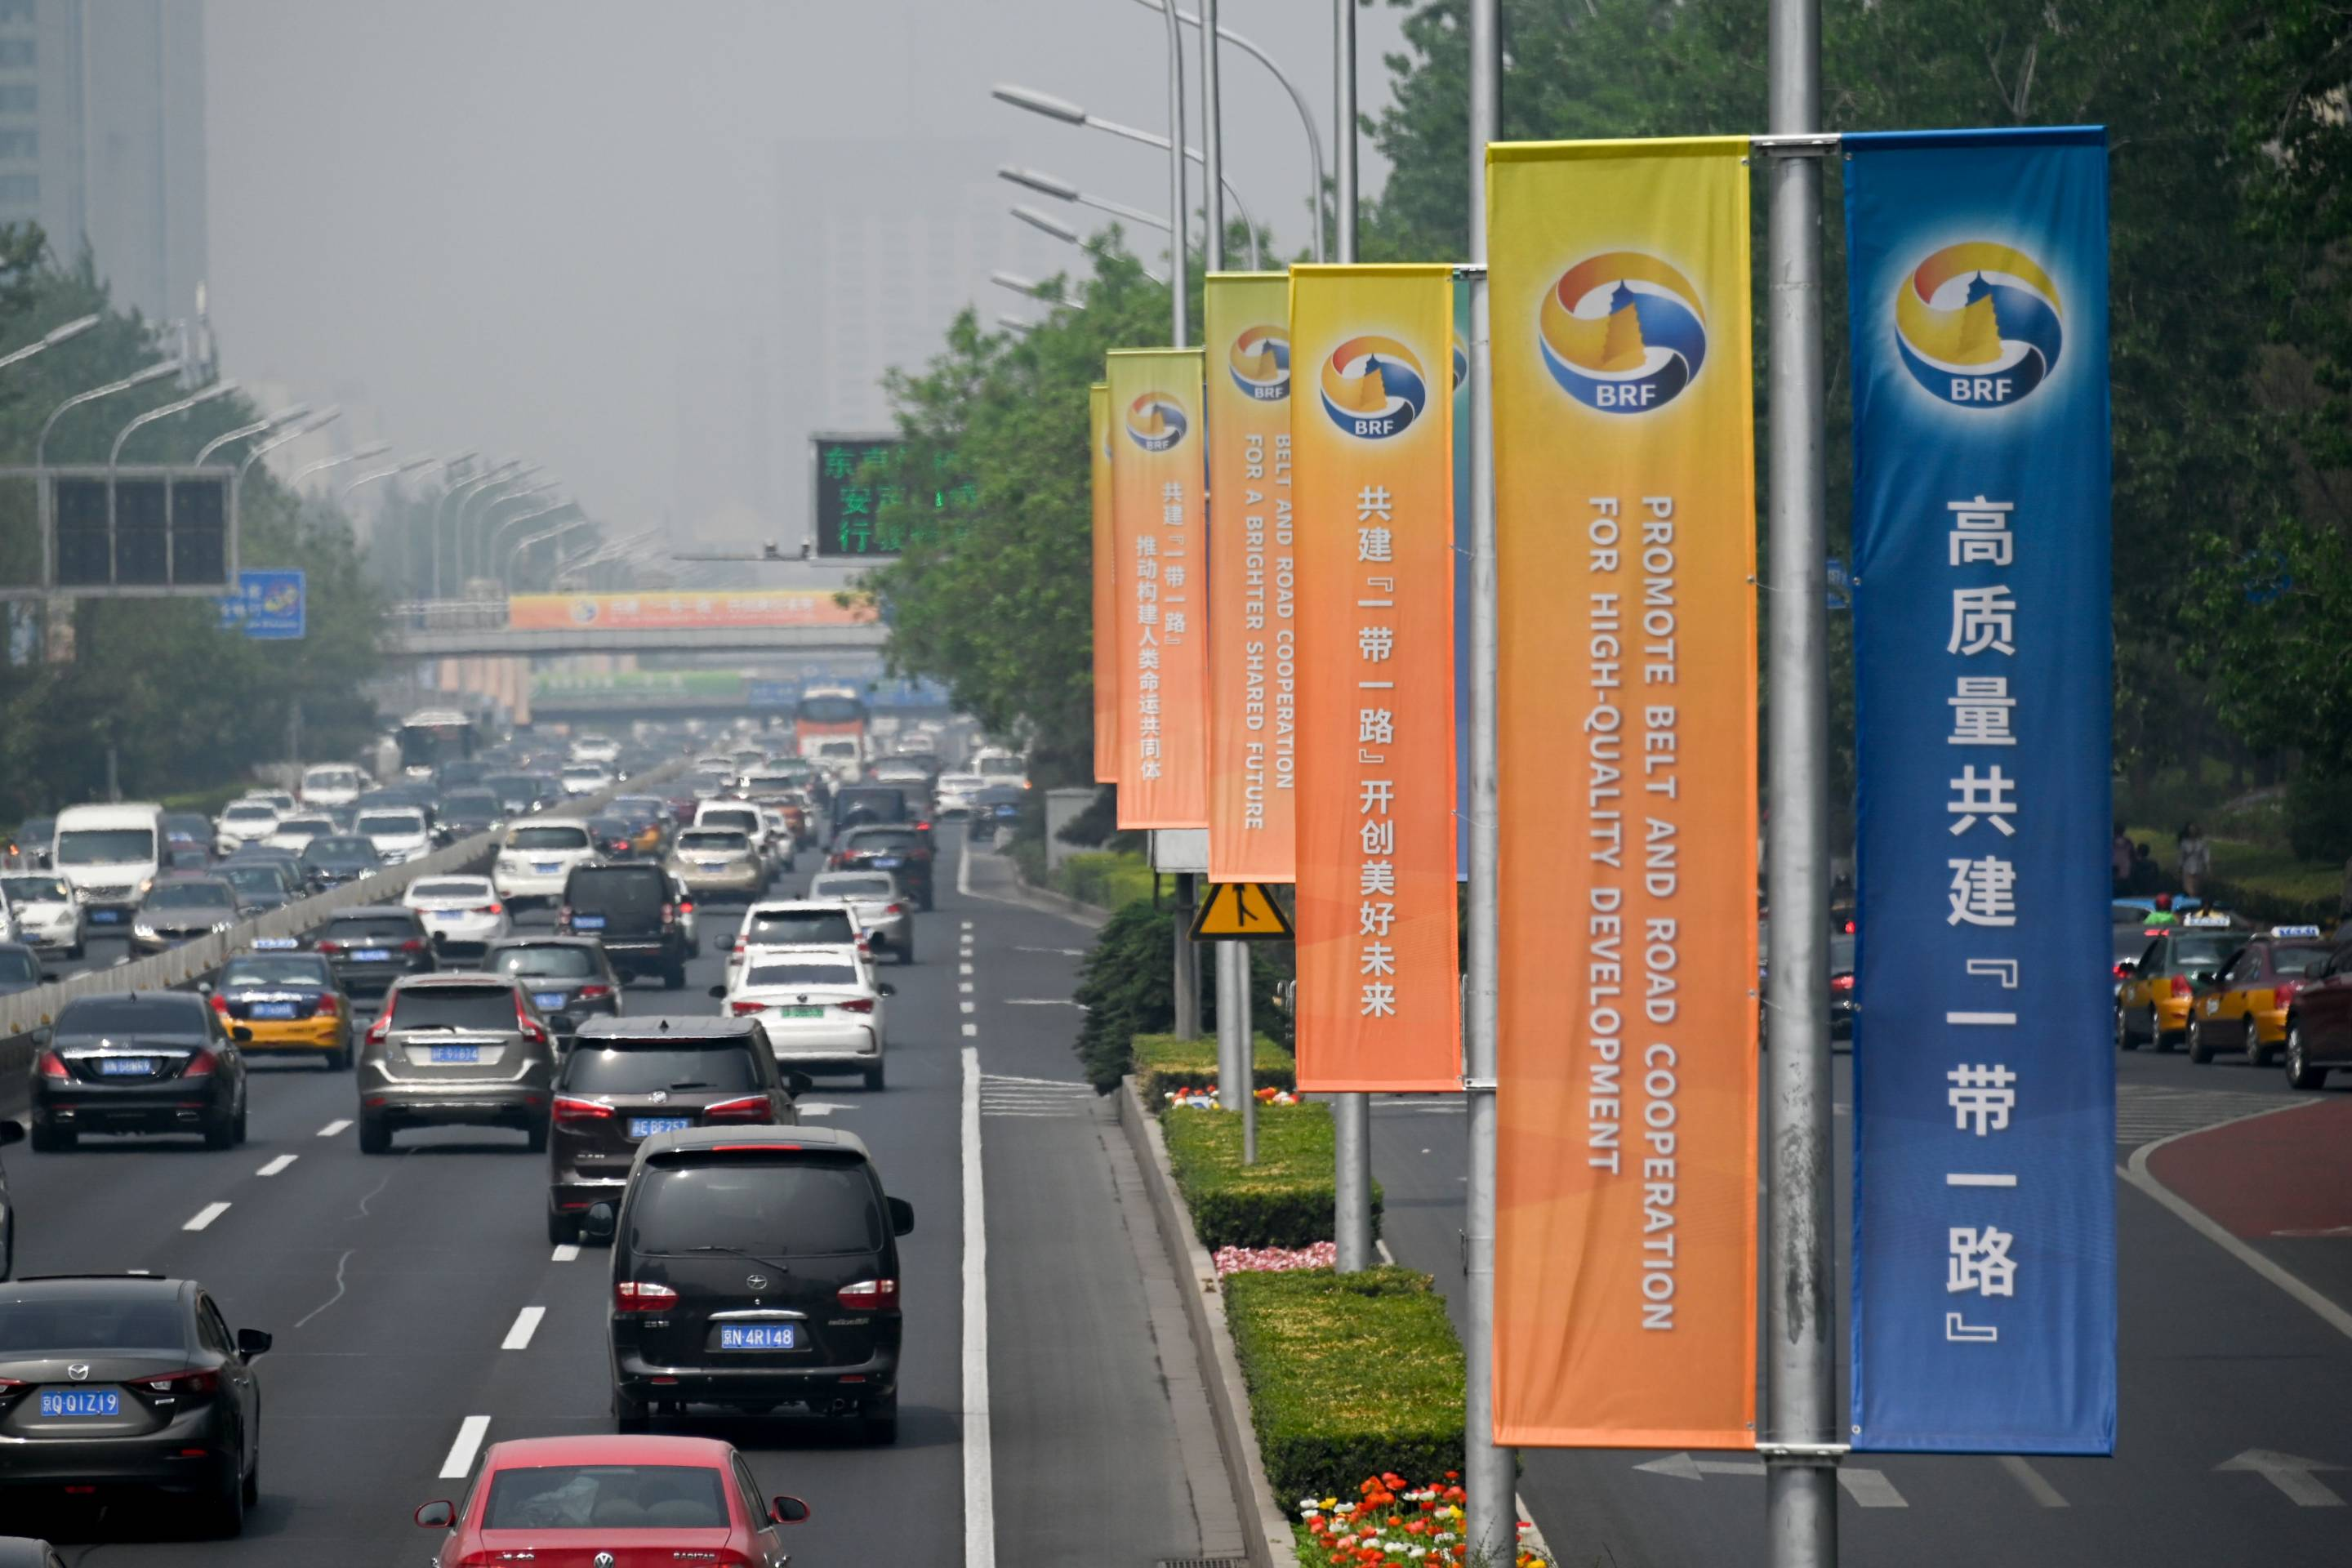 Banners are displayed along a street ahead of the Belt and Road Forum in Beijing on April 22, 2019.